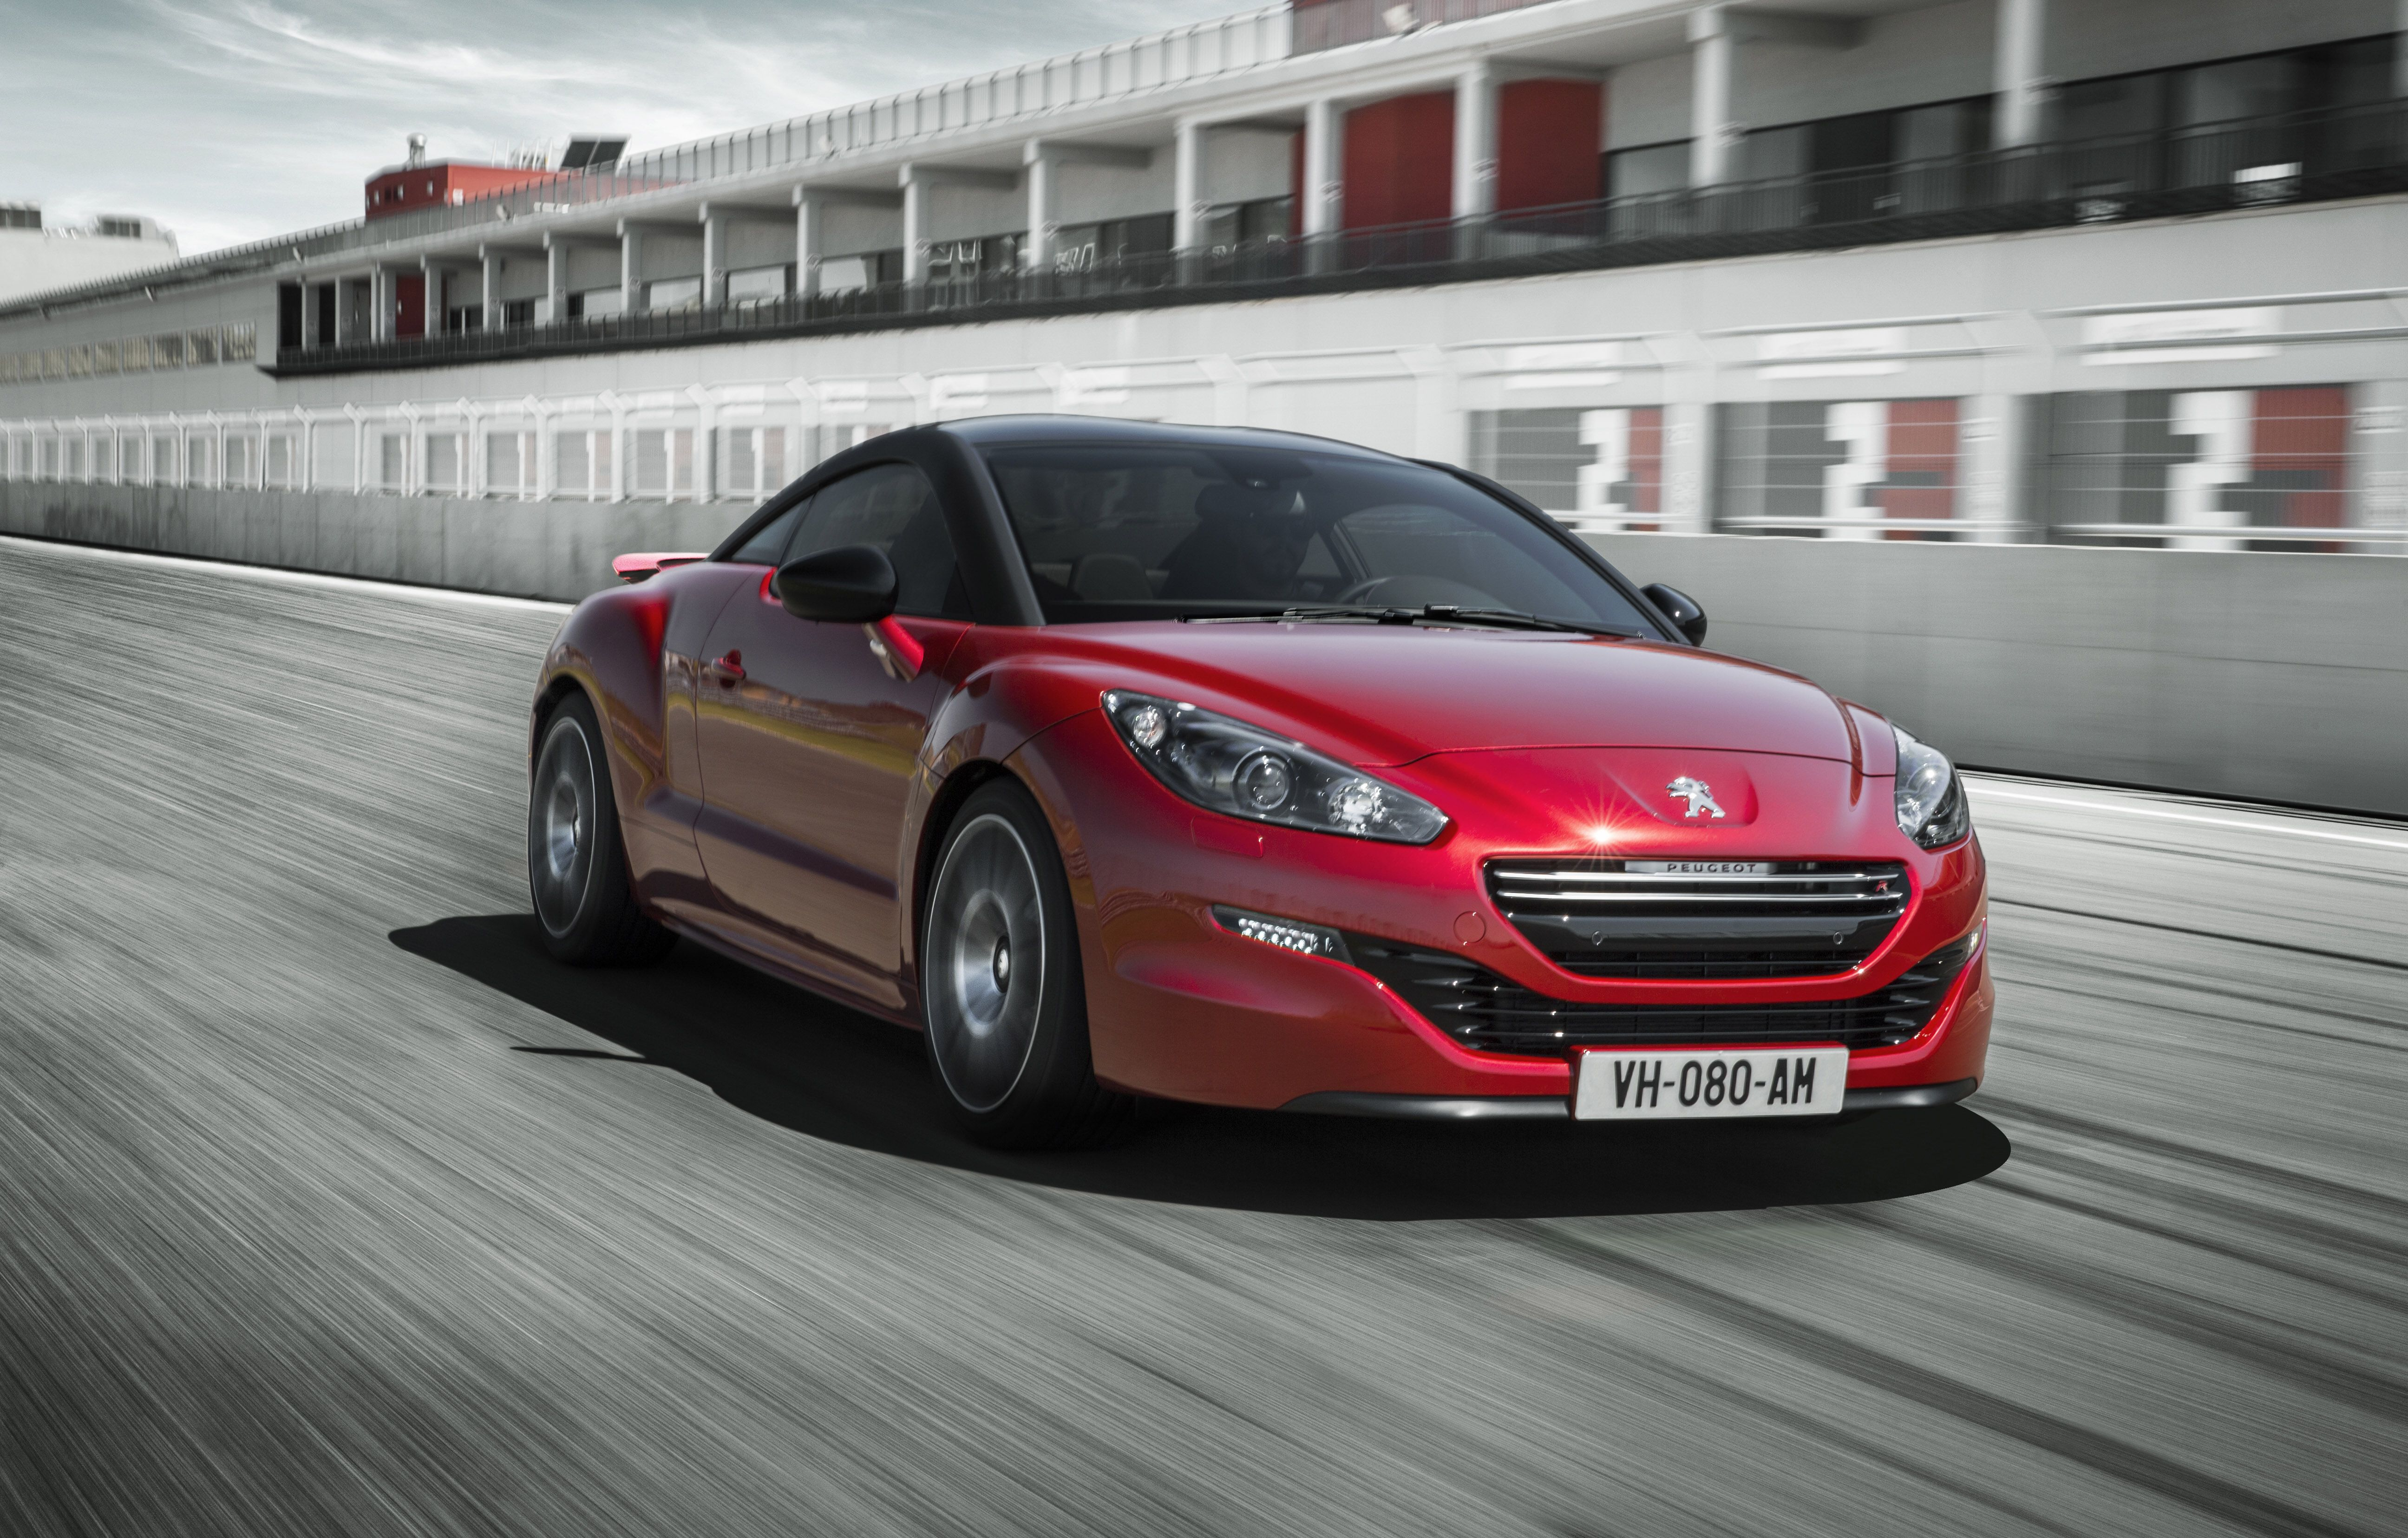 The new Peugeot RCZ R will be the most powerful road